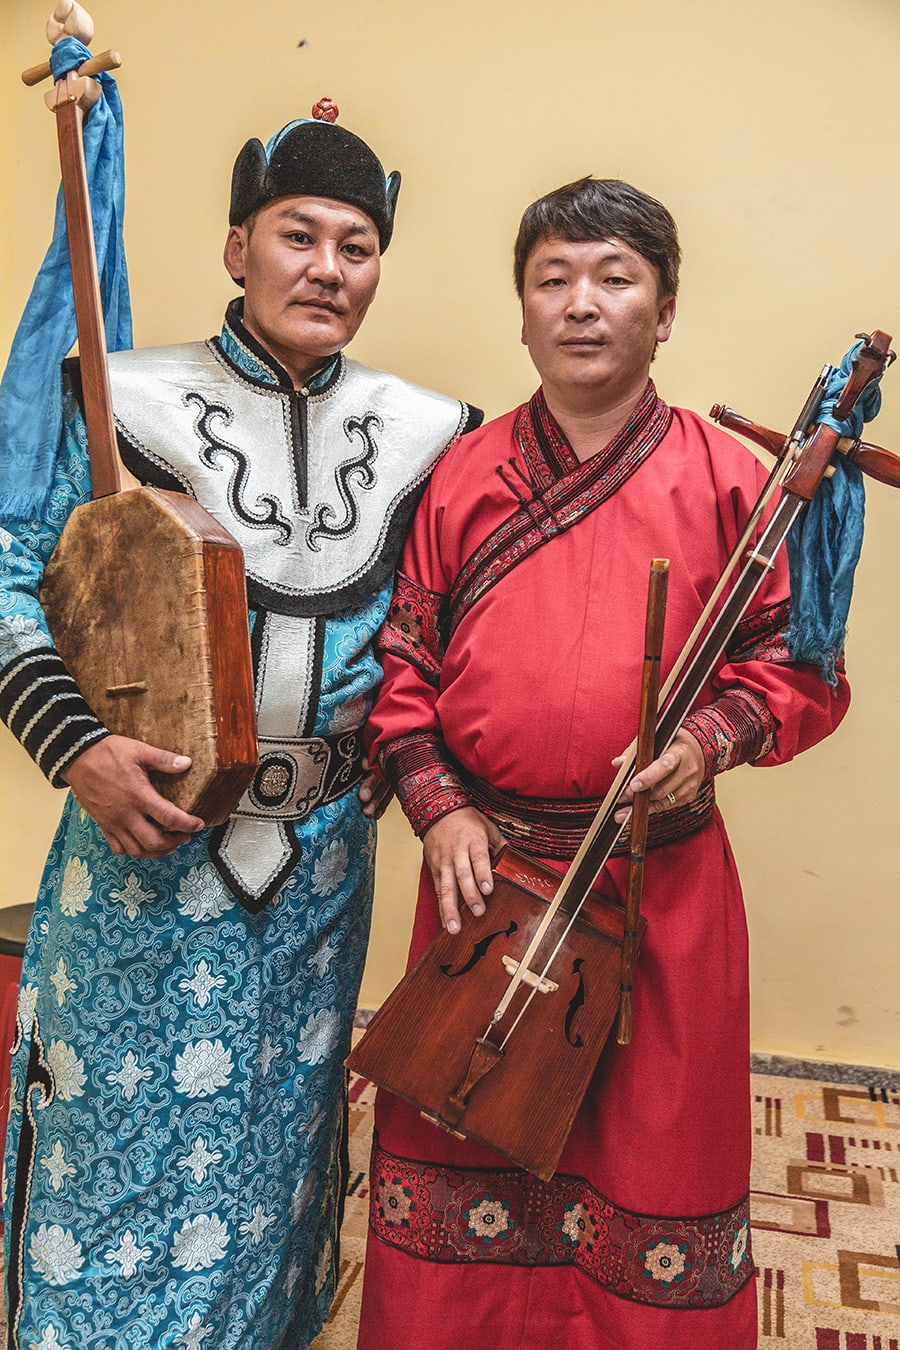 Mongolian musicians and throat singers in Khovd, western Mongolia.